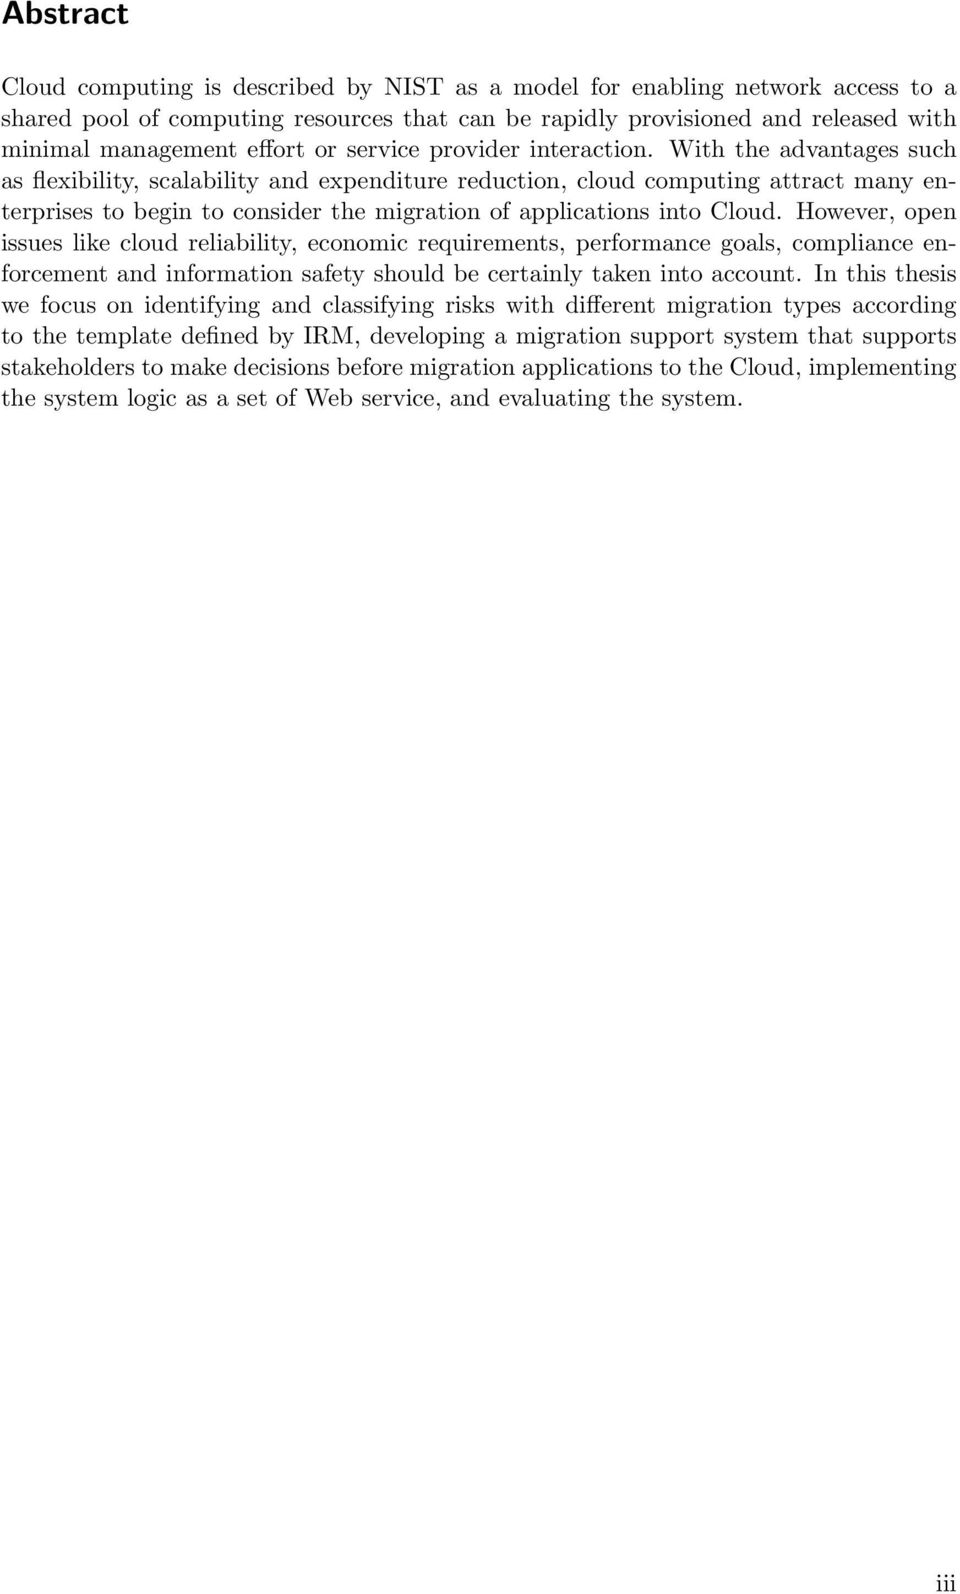 With the advantages such as flexibility, scalability and expenditure reduction, cloud computing attract many enterprises to begin to consider the migration of applications into Cloud.